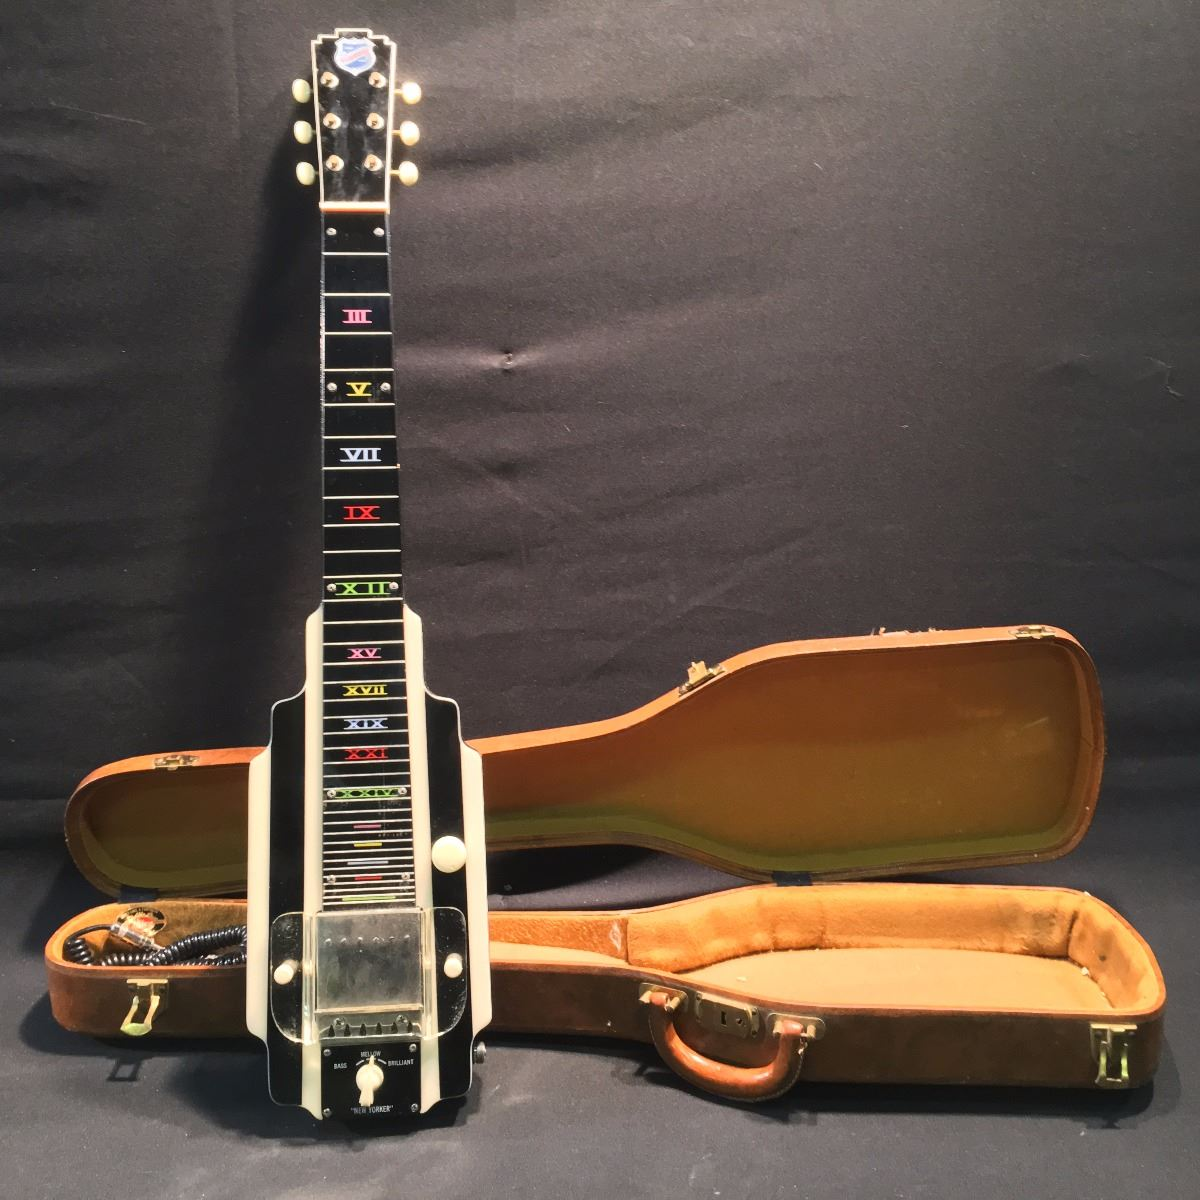 NATIONAL NEW YORKER ELECTRIC HAWAIIAN LAP STEEL GUITAR SERIAL NUMBER V35779 COMES WITH HARD